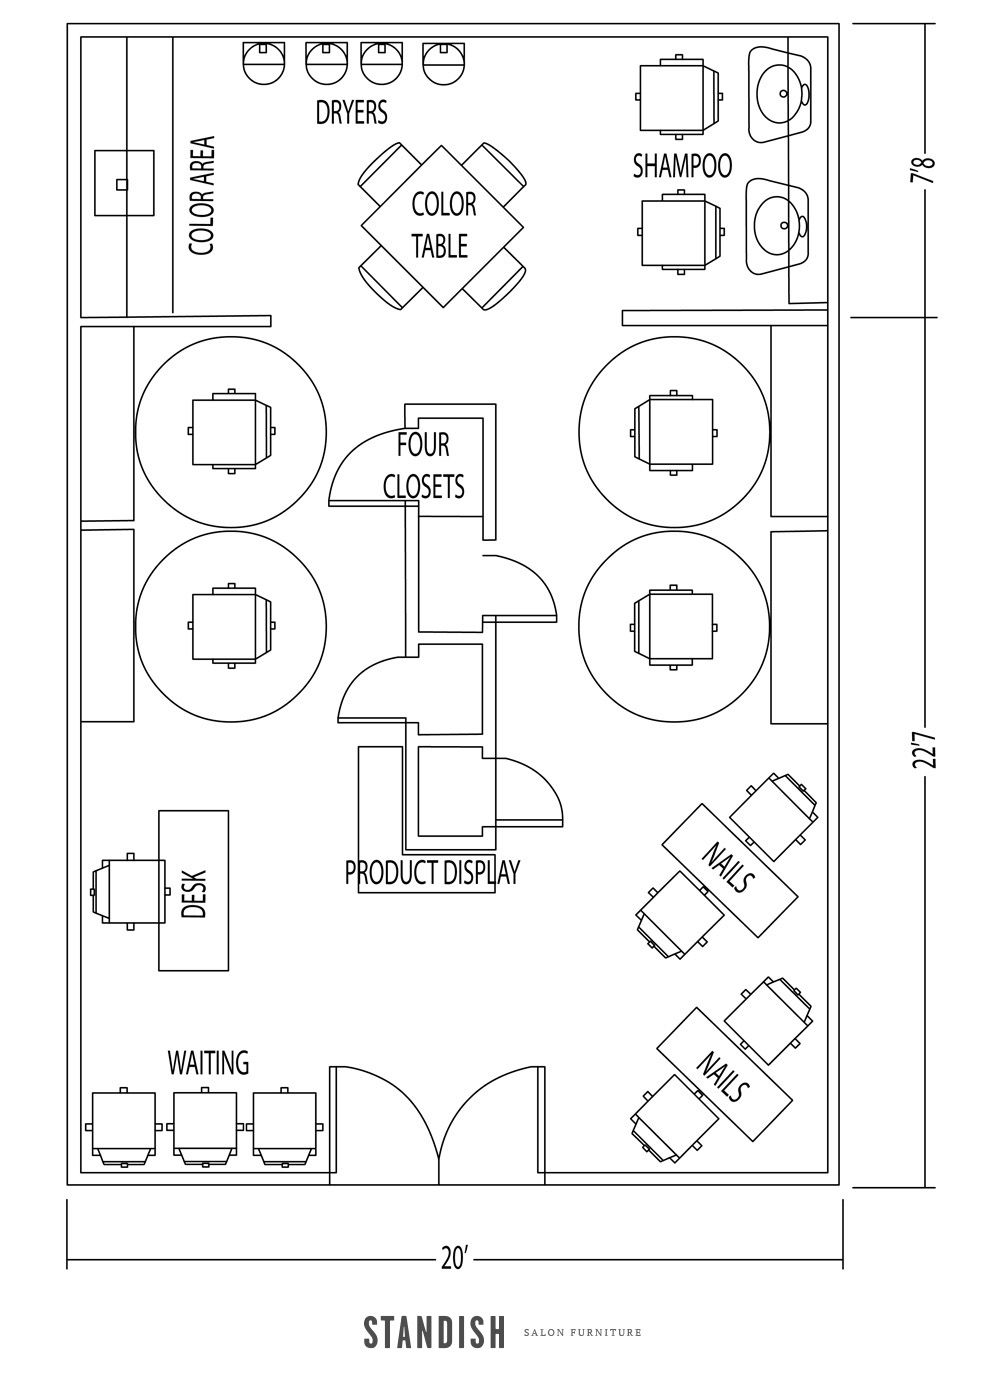 Salon blueprint layout classroom floor plan examples metropolitan are you opening a new salon or giving your salon design a refresh 5f76fc75cbd49360acd606ee0461e2b7 115967759130370773 salon blueprint layout malvernweather Gallery